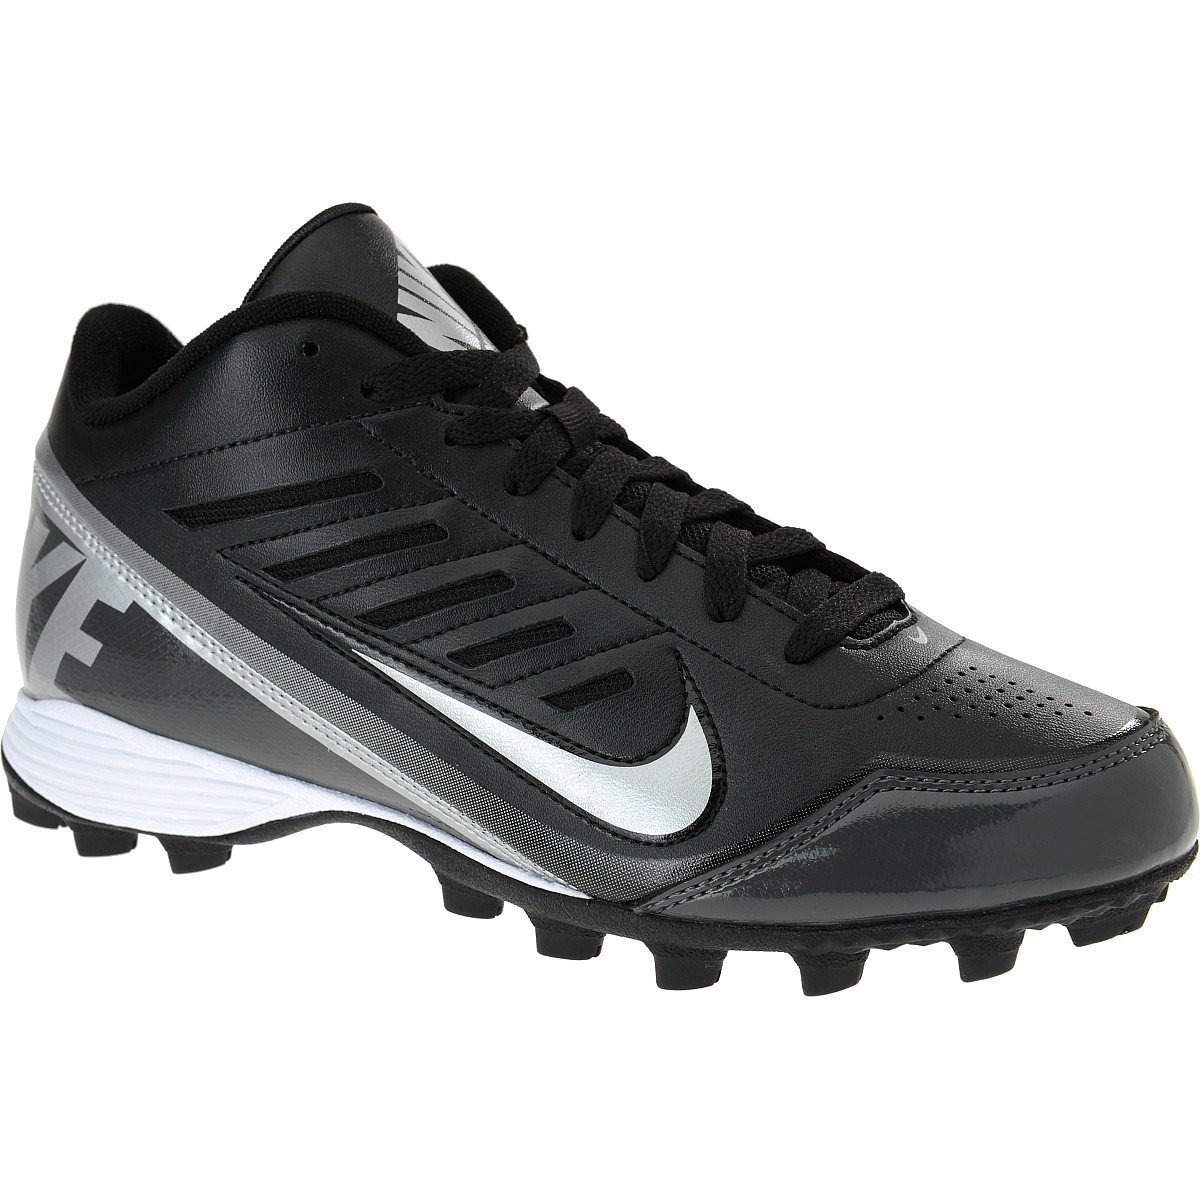 03de8ae96 Nike Land Shark 3 4 Men s Football Cleats Black Metallic Silver Tornado 1 M  US Little Kid  Buy Online at Low Prices in India - Amazon.in